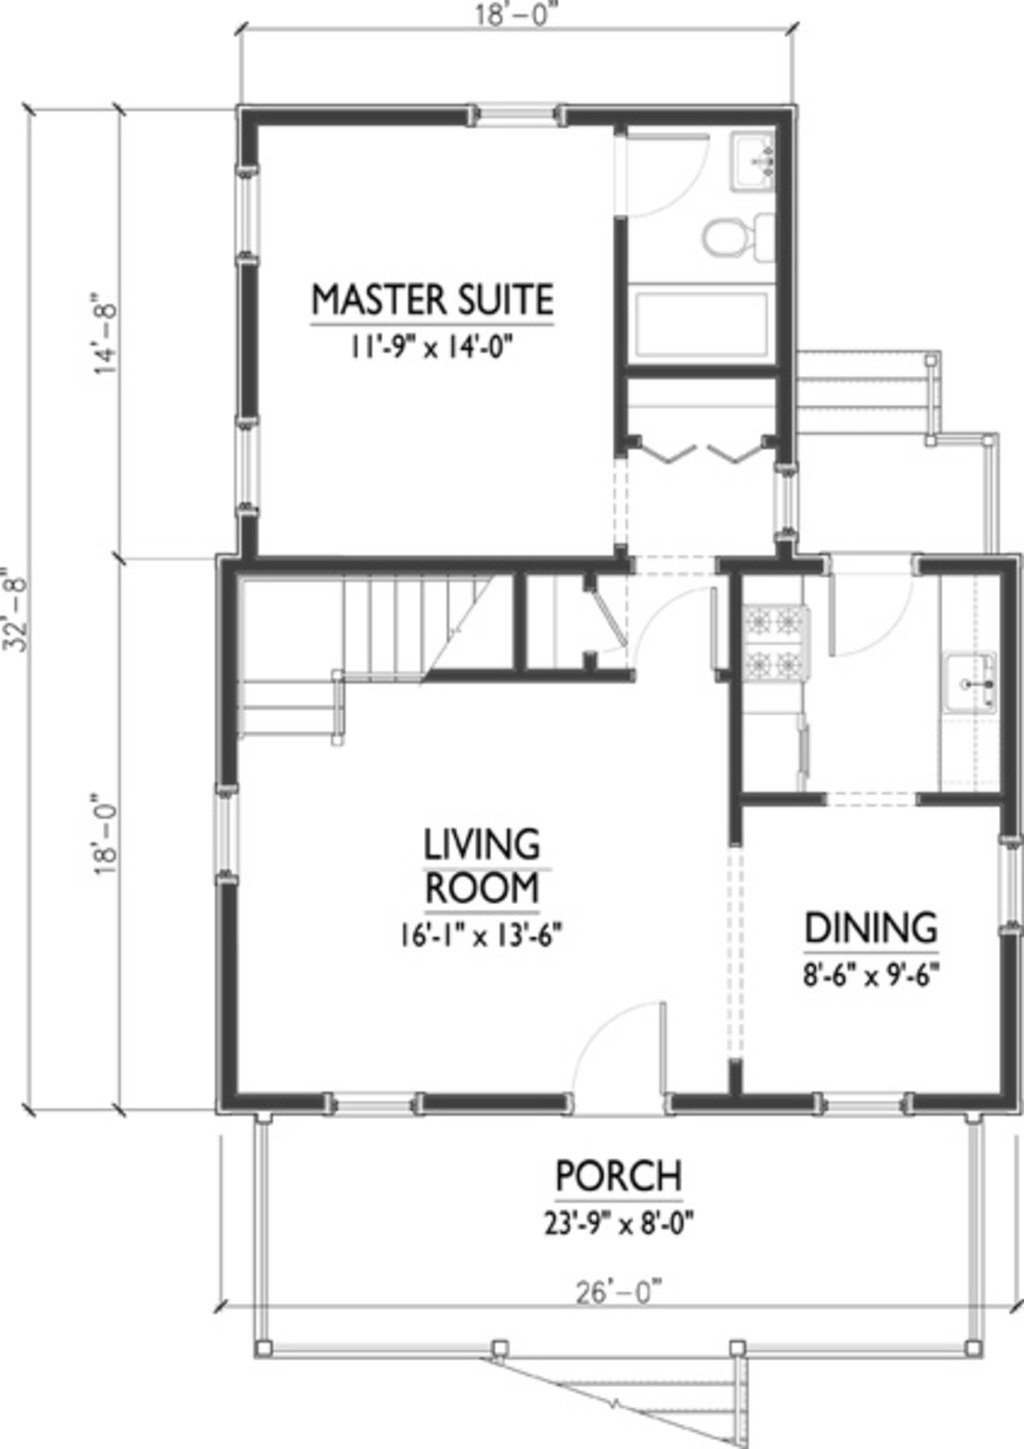 850 Sq Ft House Design Awesome Contemporary 1200 Square Foot House 850 Sq Ft Plan Luxury 2